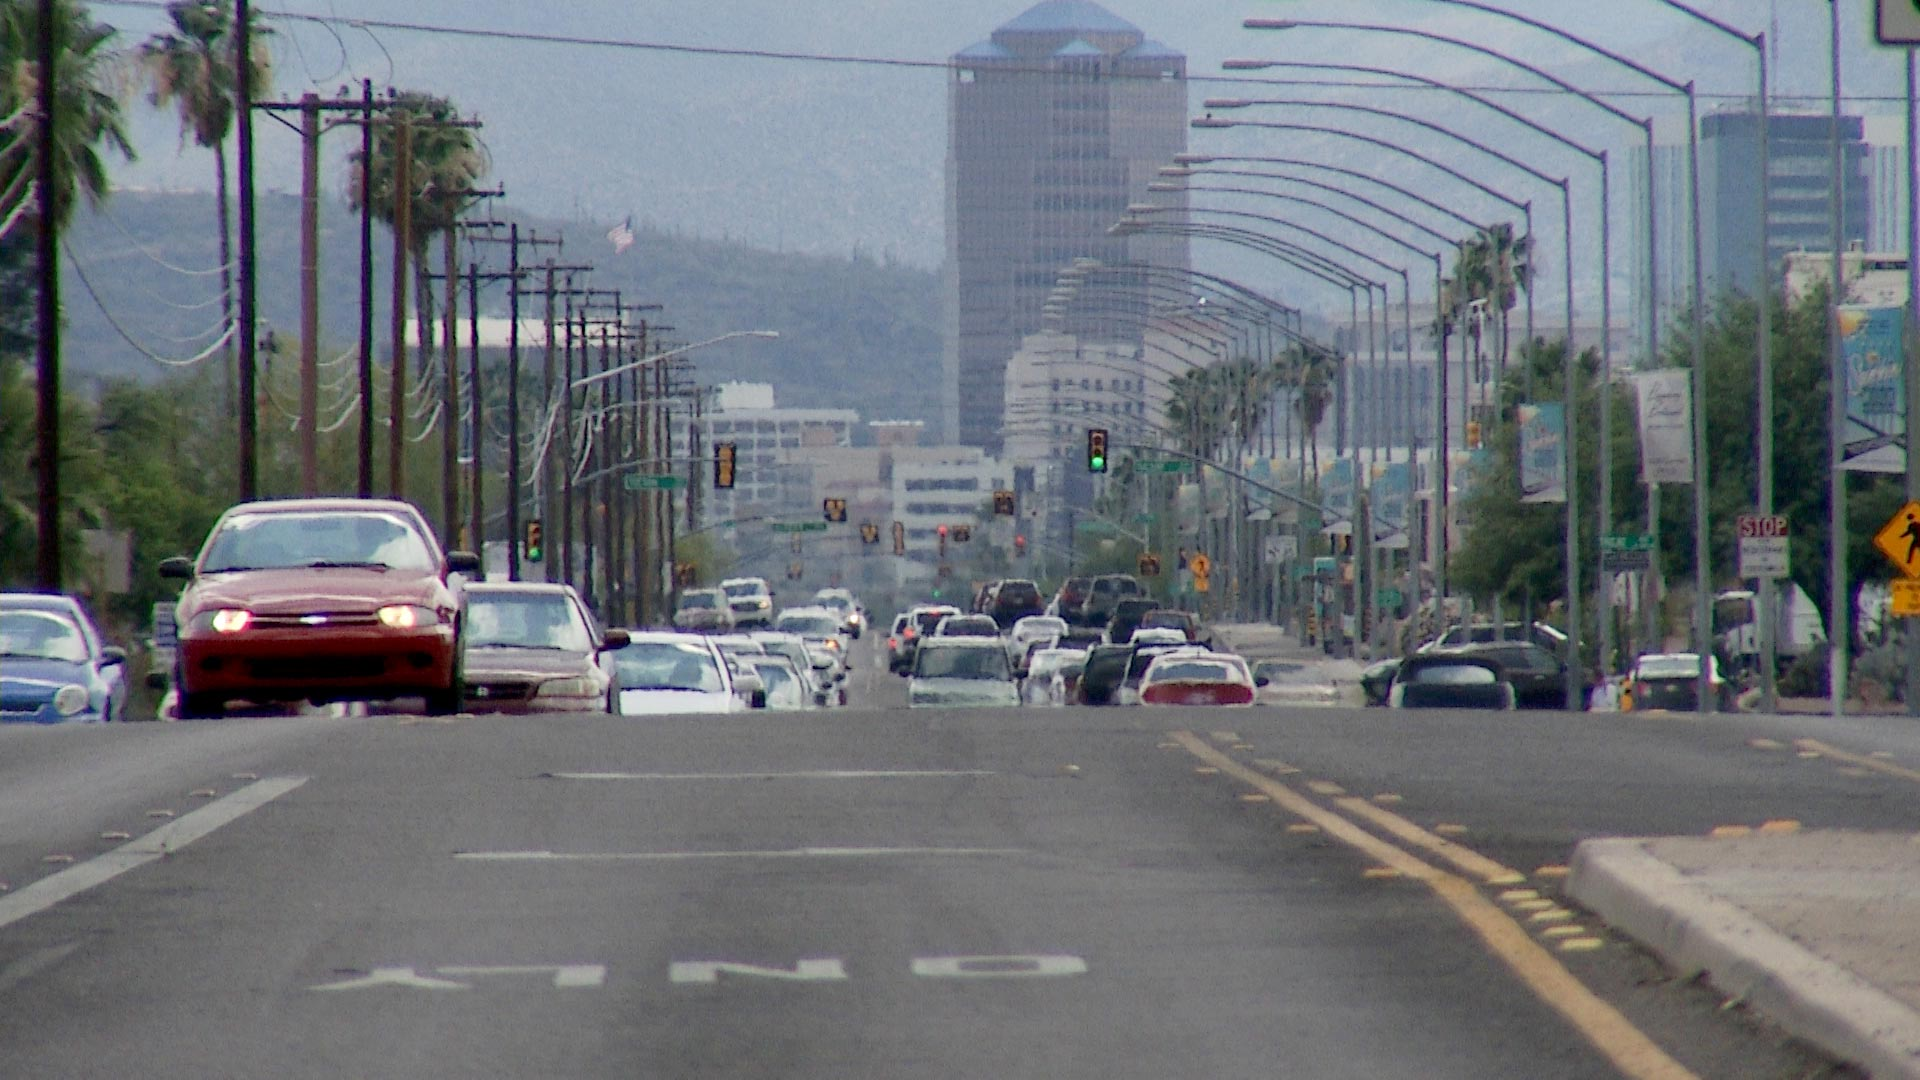 Downtown Tucson seen from afar.